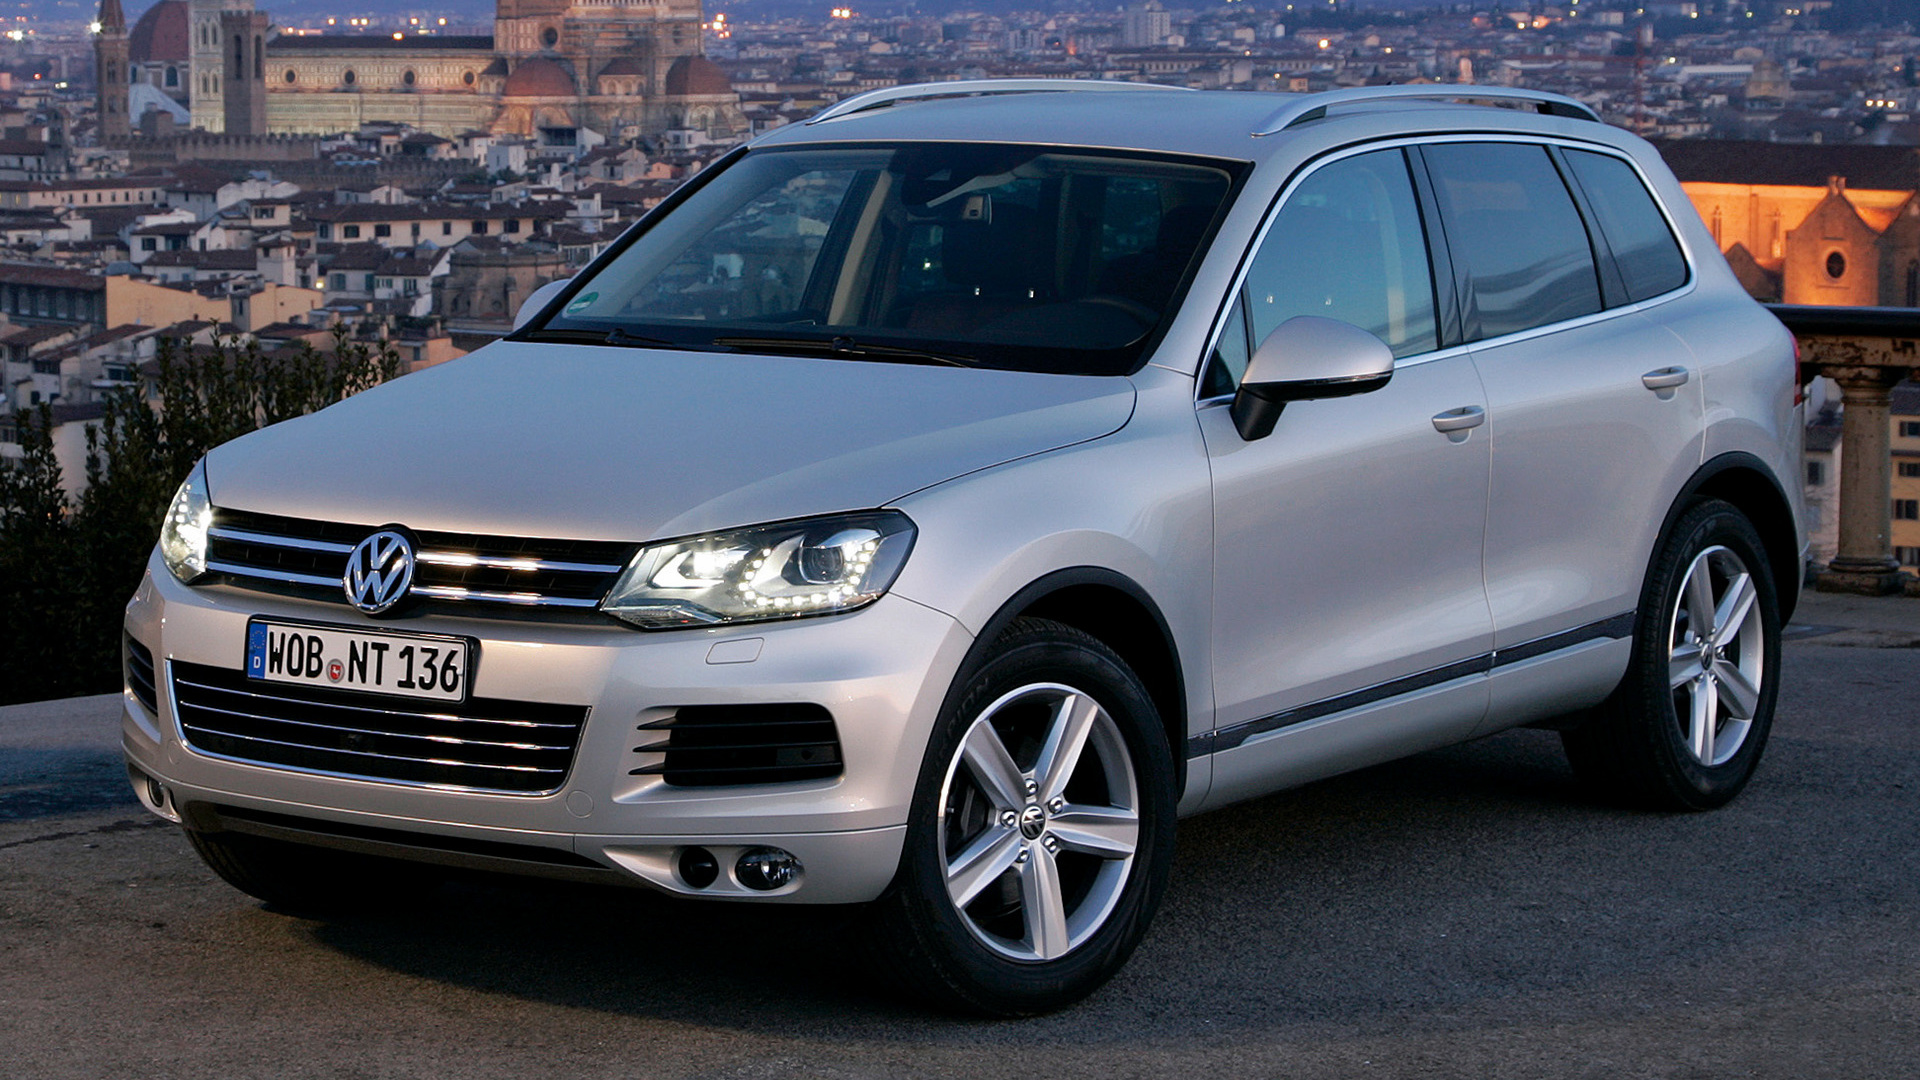 2010 volkswagen touareg wallpapers and hd images car pixel. Black Bedroom Furniture Sets. Home Design Ideas